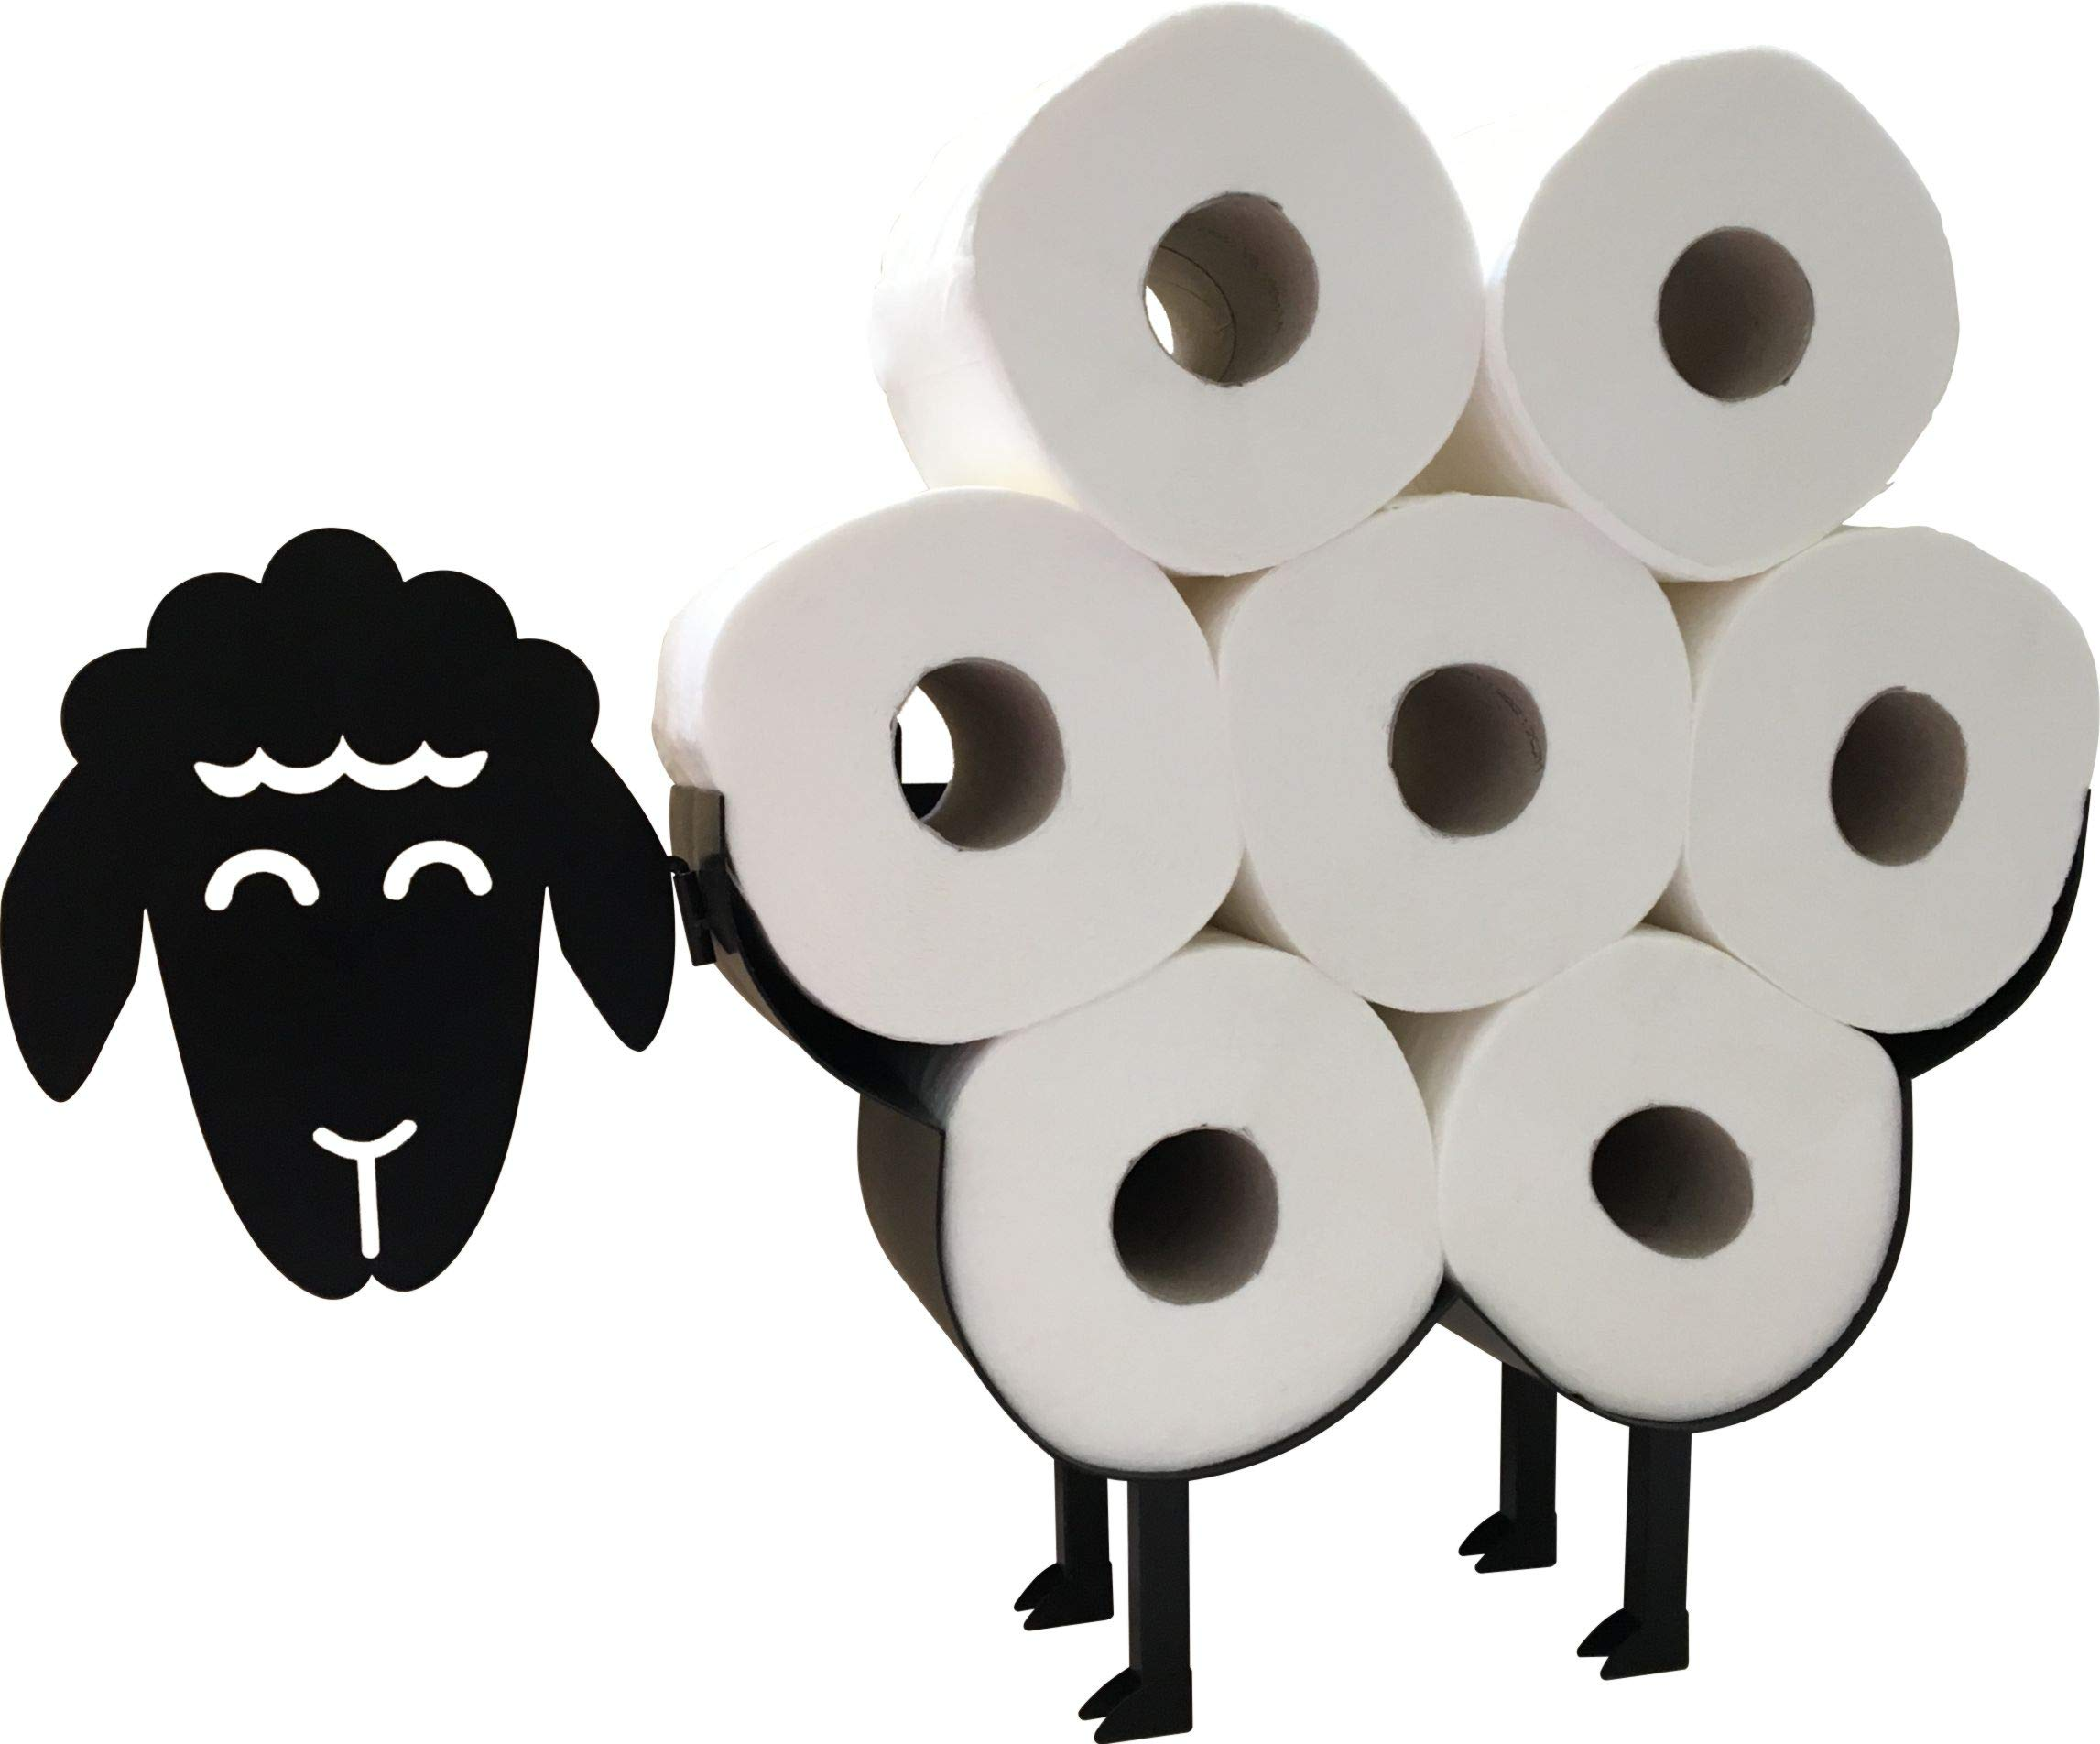 Cute Black Sheep Toilet Paper Roll Holder - Cool Novelty Free Standing or Wall Mounted Toilet Roll Tissue Paper Storage Stand & Holder | Bathroom Floor Decor Accessories | Best Gifts Idea - Neat Sheep by NeatSheep (Image #1)